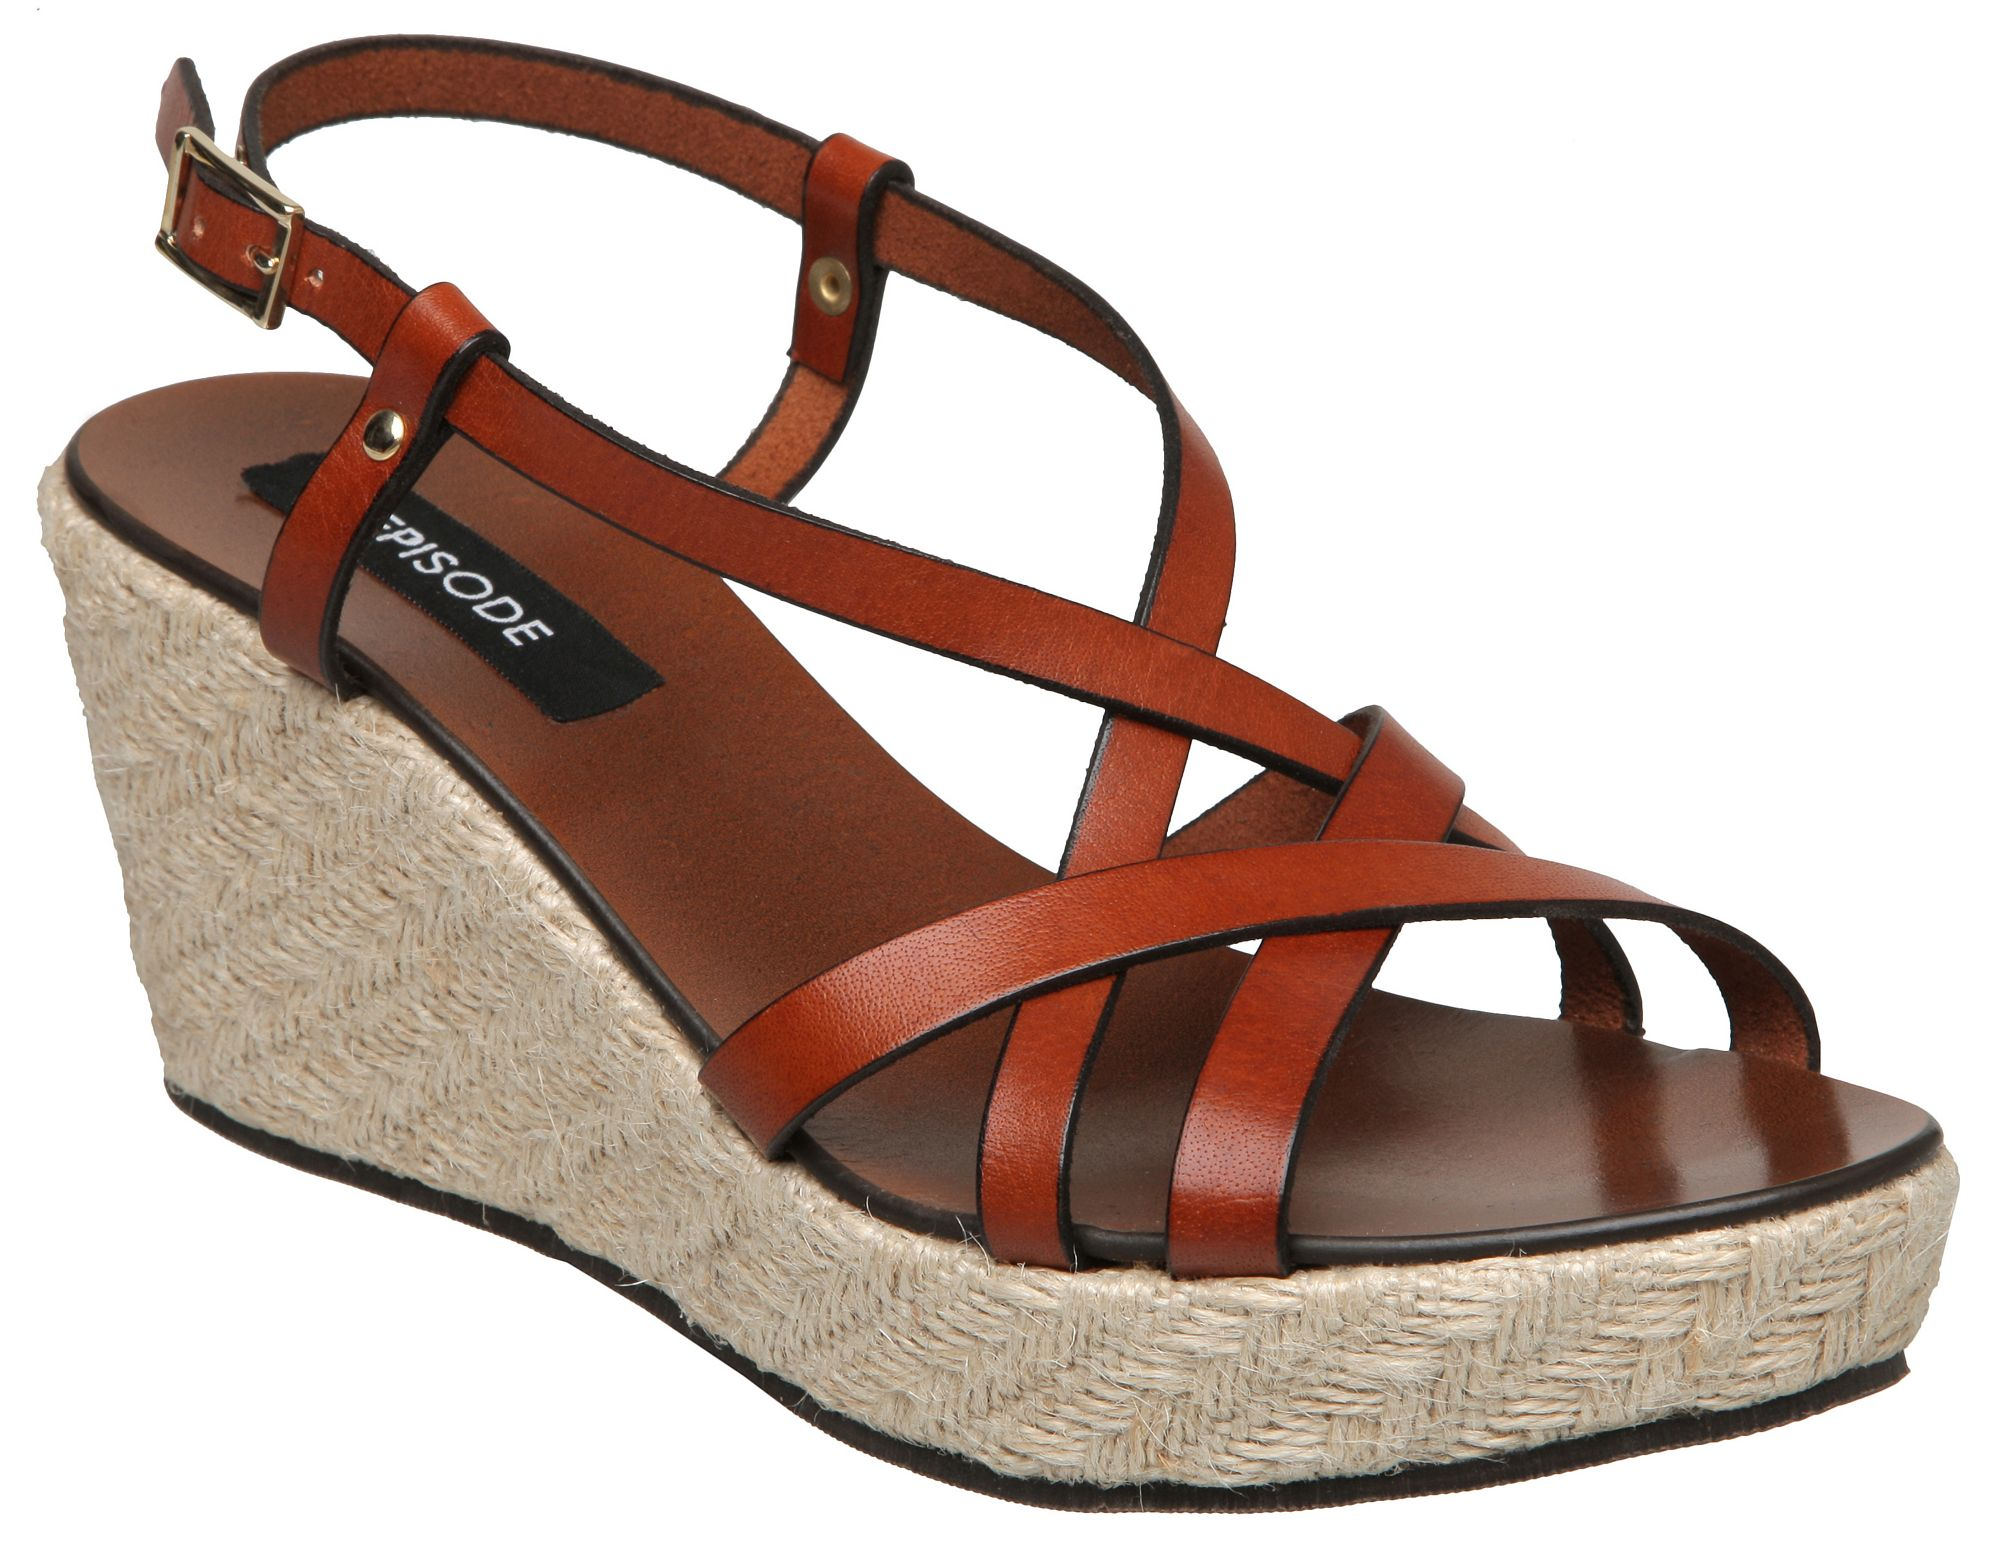 Free shipping on women's wedge sandals at shopnow-ahoqsxpv.ga Shop the latest styles from the best brands like Steve Madden, Sam Edelman, Vince Camuto and more. Totally free shipping and returns.